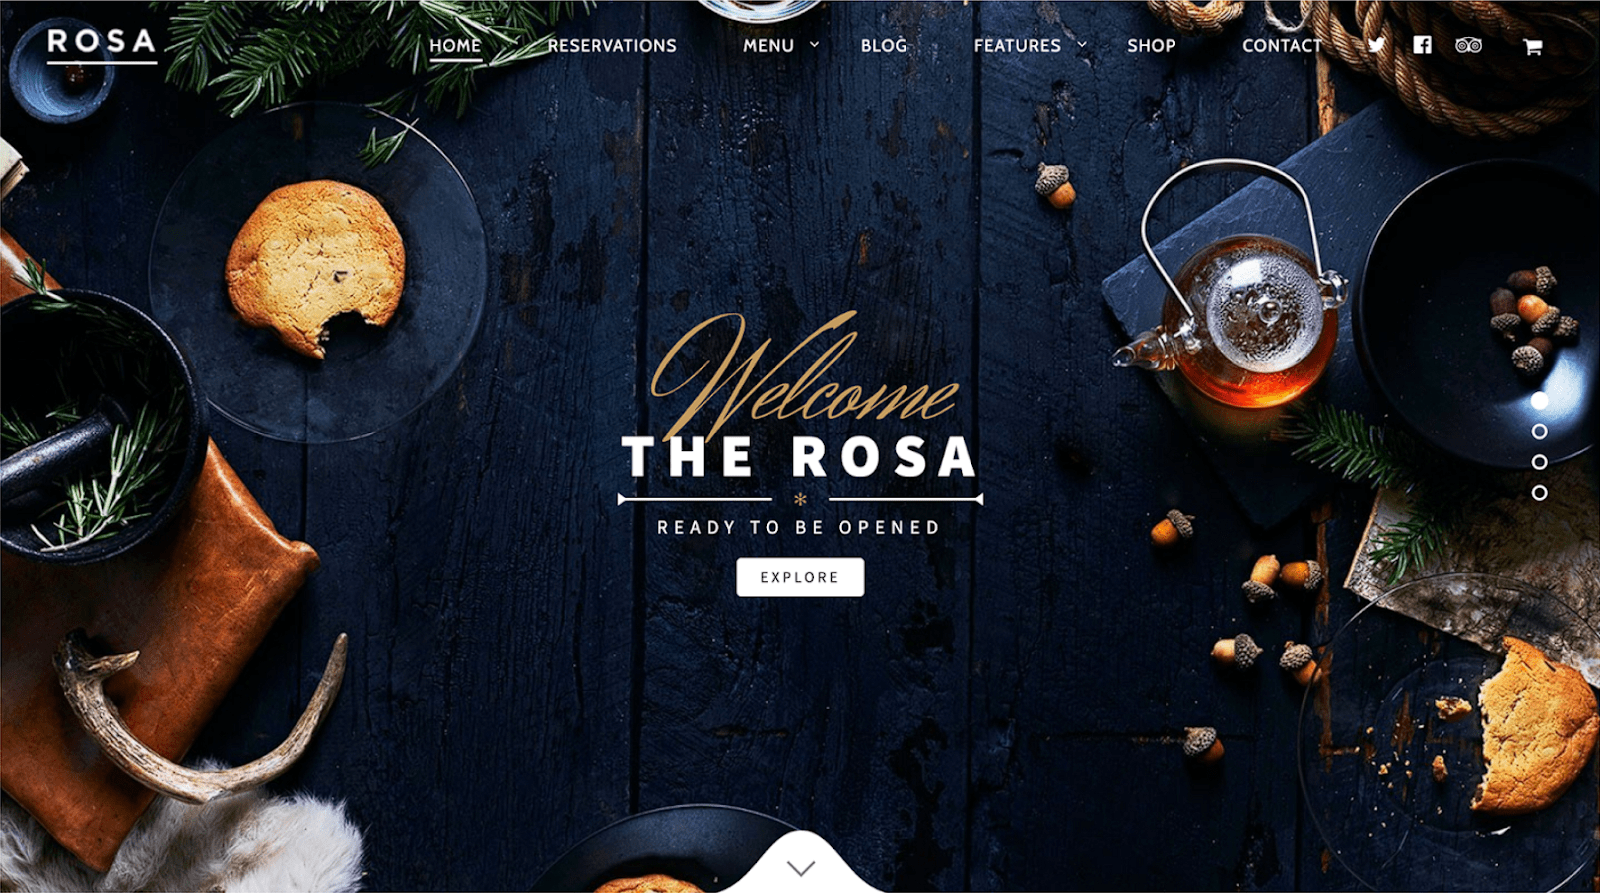 copy-of-the-6-best-restaurant-website-templates-1.png